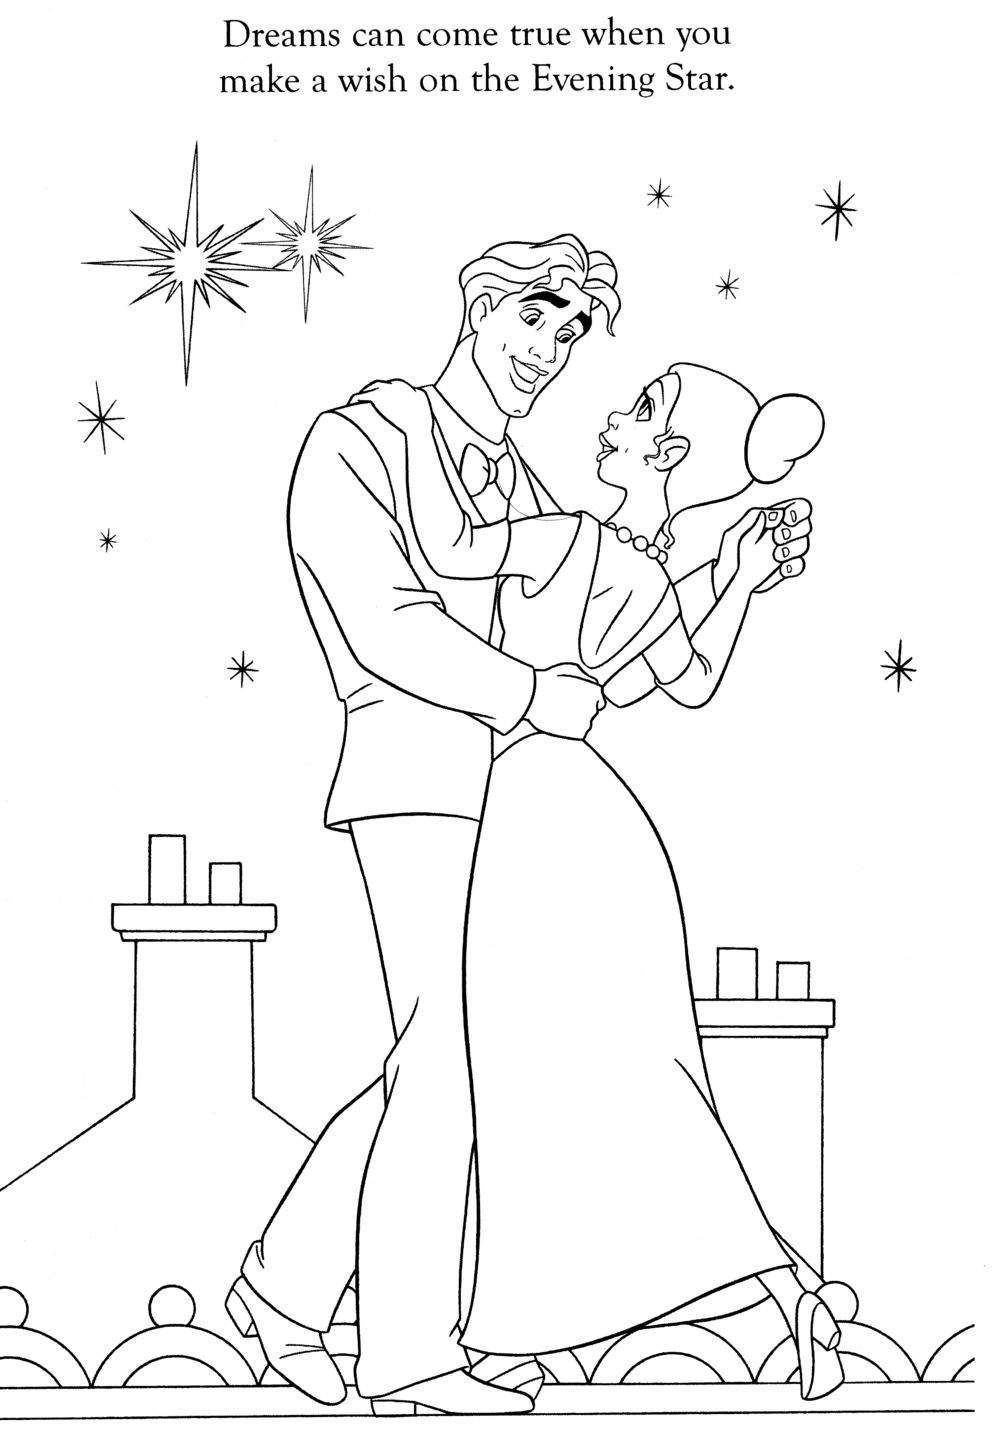 Tiana and Naveen Coloring Pages | Coloring Book Pages | (((( Tiana ...